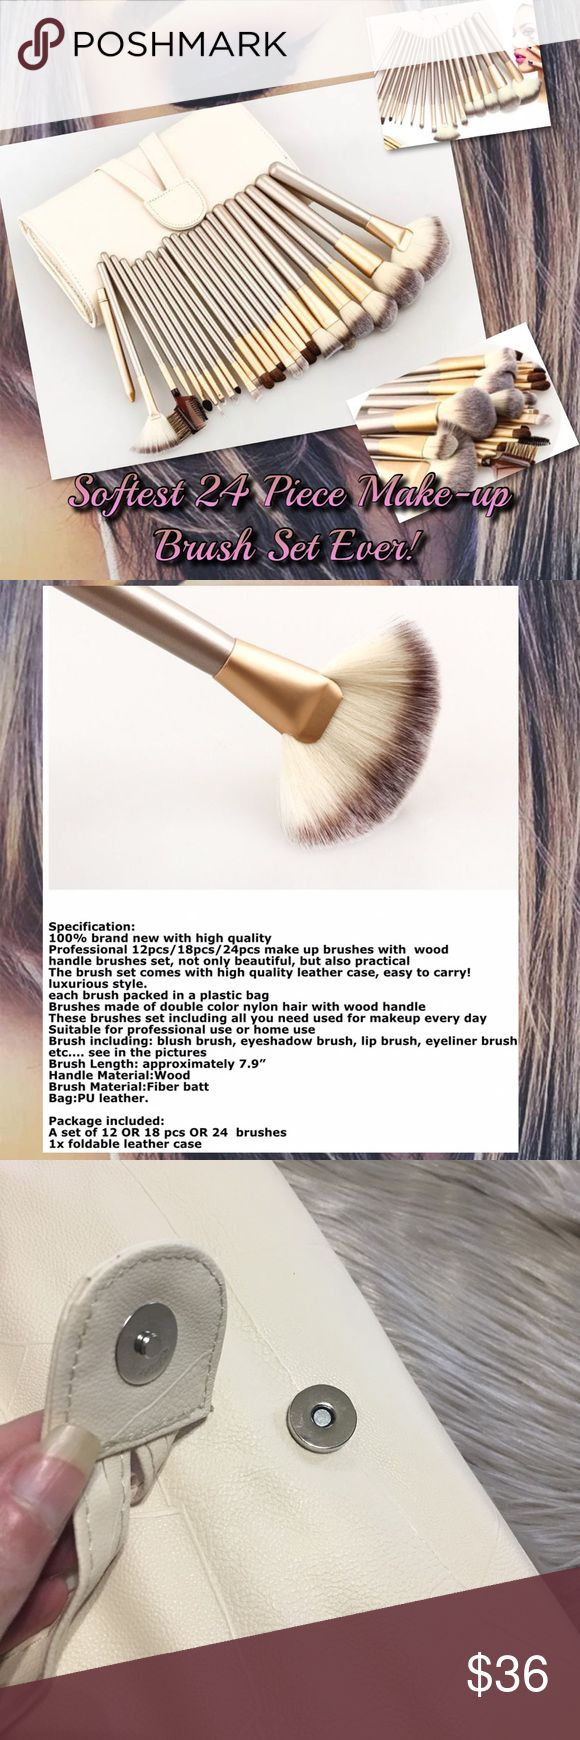 Softest 24 Piece Make-up Brush Set EVER! 3 Avail! I own this!  I own a $70 Kevin Aucoin with hairs falling out& Sephora's that never dry.  It's not $$/ brand.  It's application & basic craftsmanship.  Stop wasting your money--I am!  Yes some are good!  Tarteist is a game changer--Seriously!  This is the best bundle I've bought, I bought many.  Bag PU Leather, flexible w/ magnetic closure.  Each large has plastic cover.  Protective flap cover-no brushes falling out.  Brushes crafted…